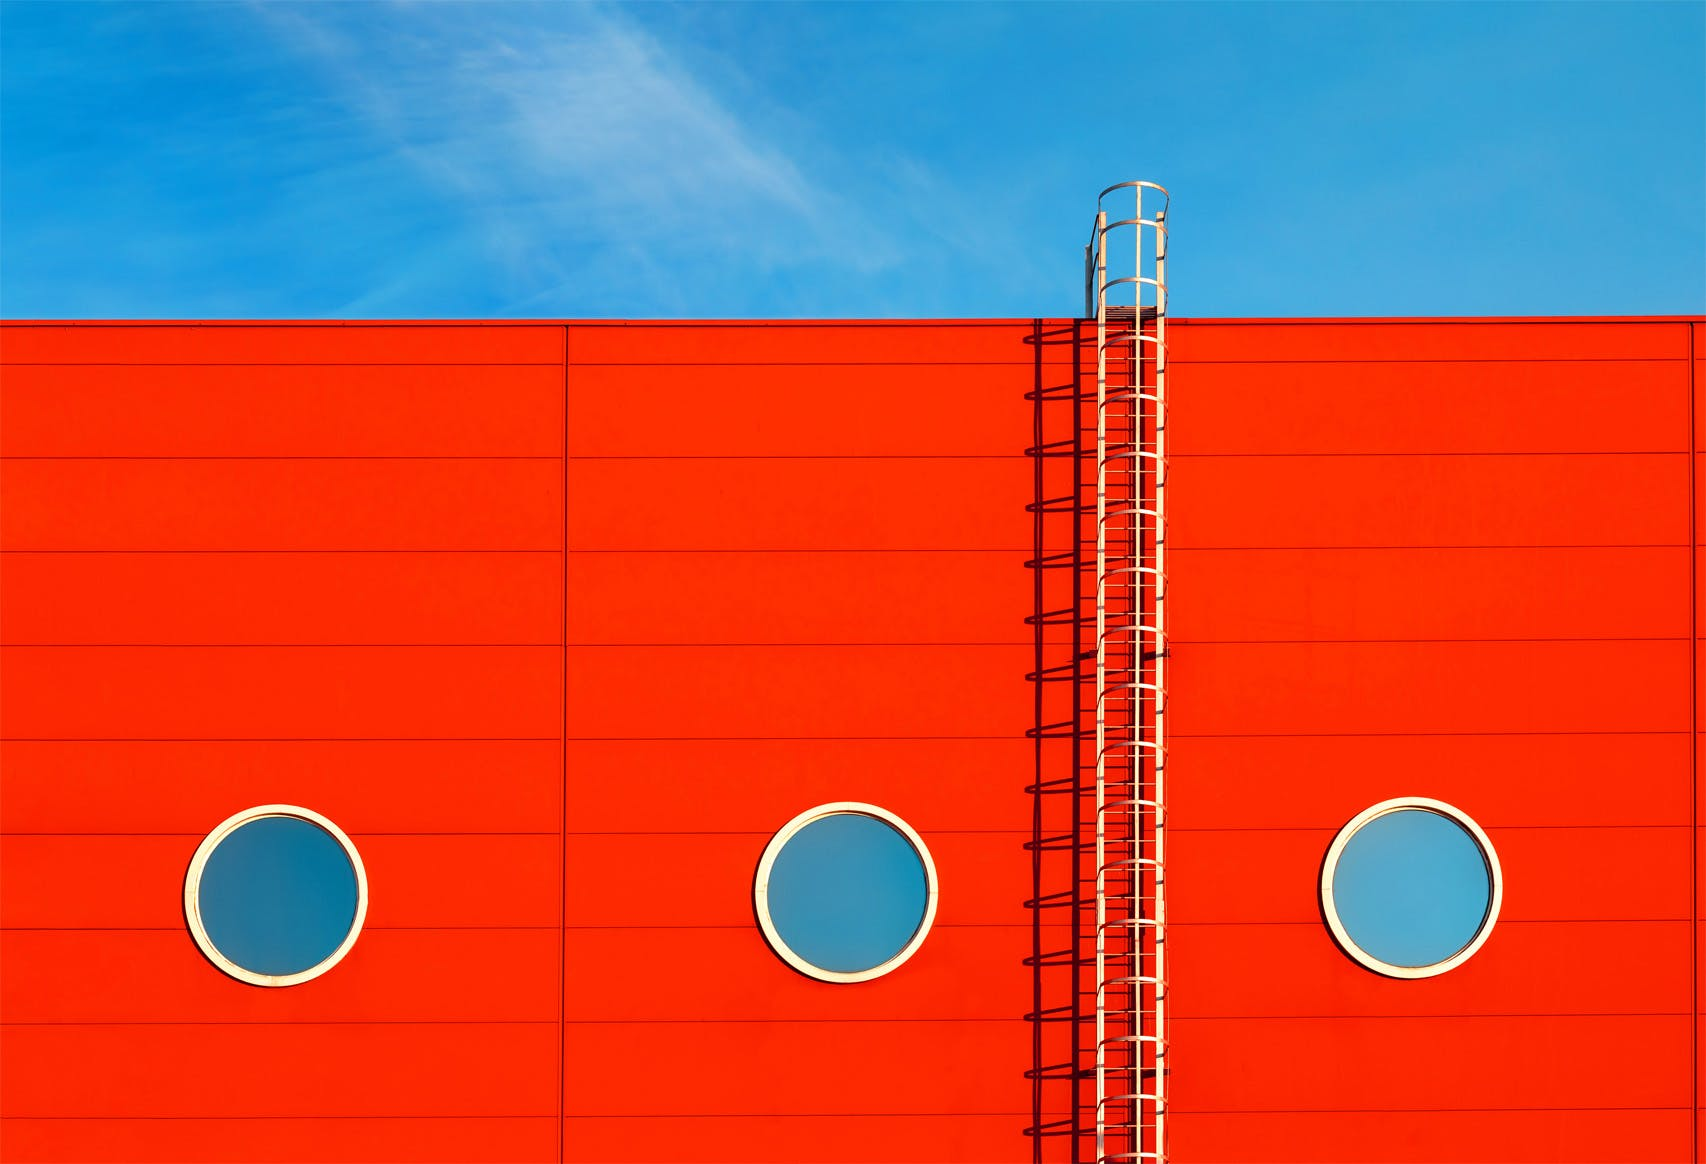 white ladder on red background-with port holes on blue sky